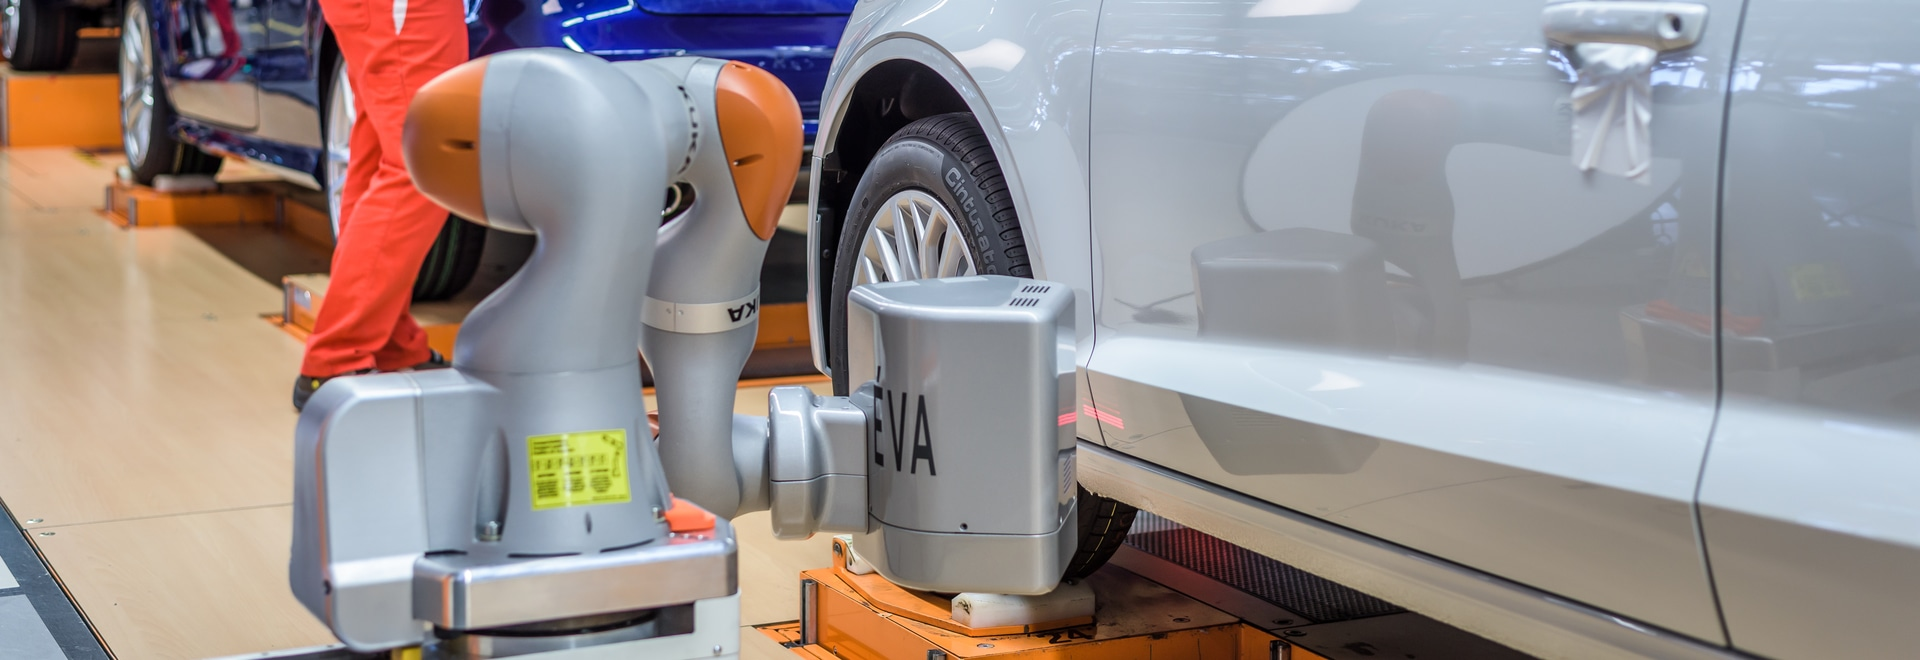 CALIPRI C12 COBOT system and CALIPRI C11 manual inline systems in final assembly at Győr